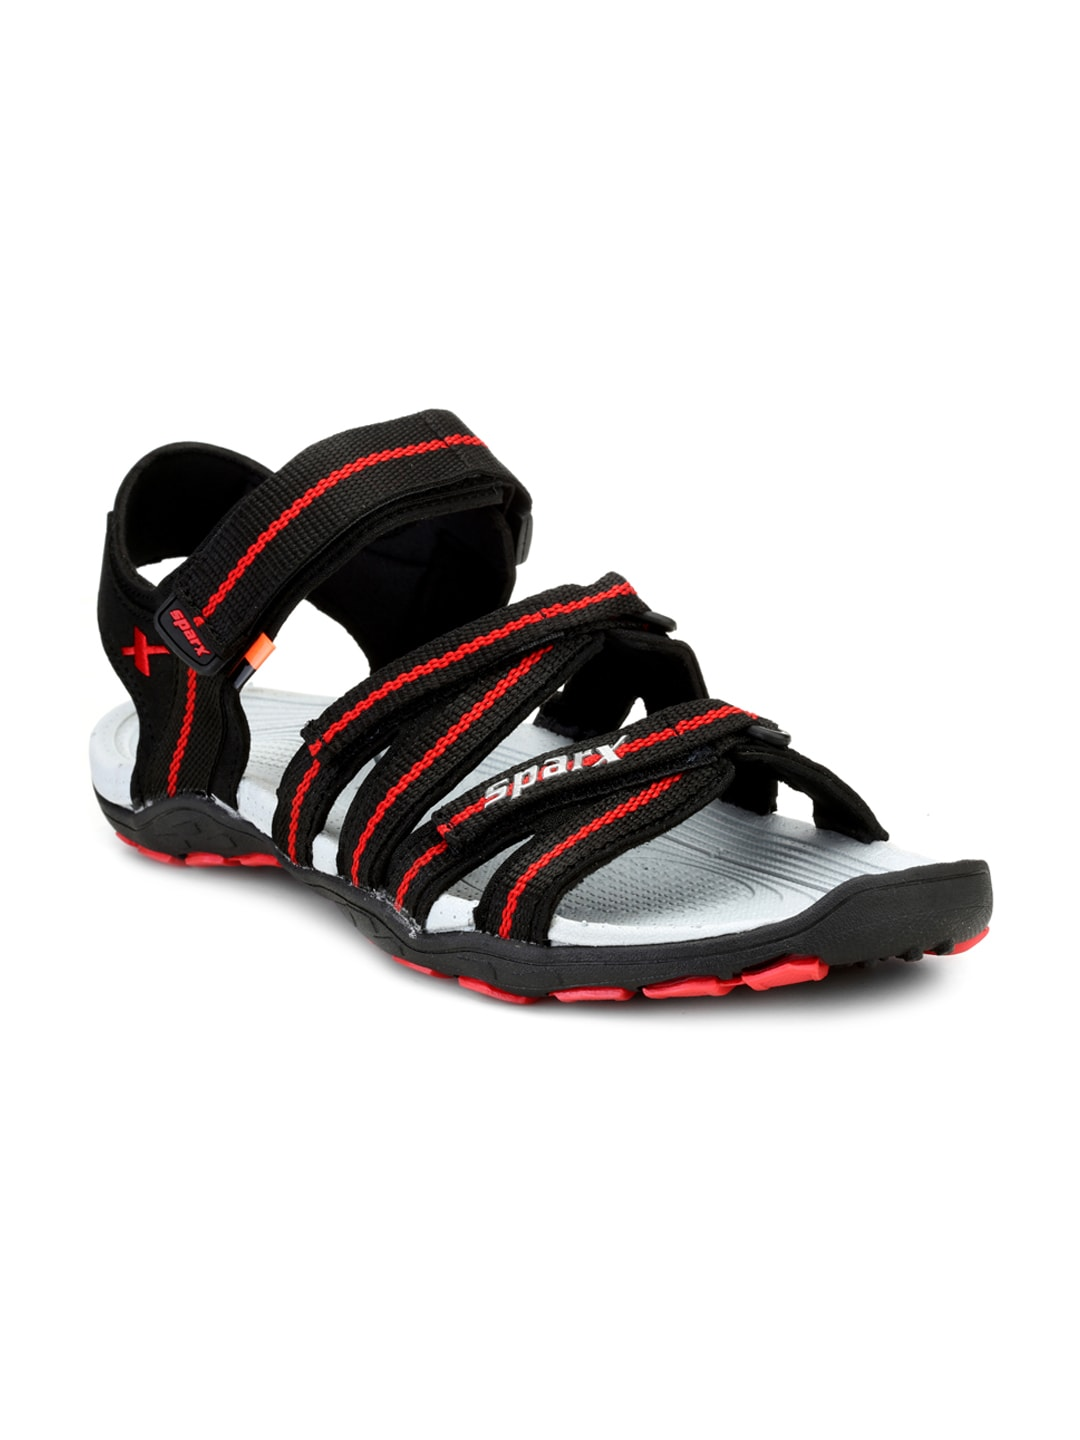 811324cdc2062 Sparx Sandals - Buy Sparx Sandals For Men   Women Online